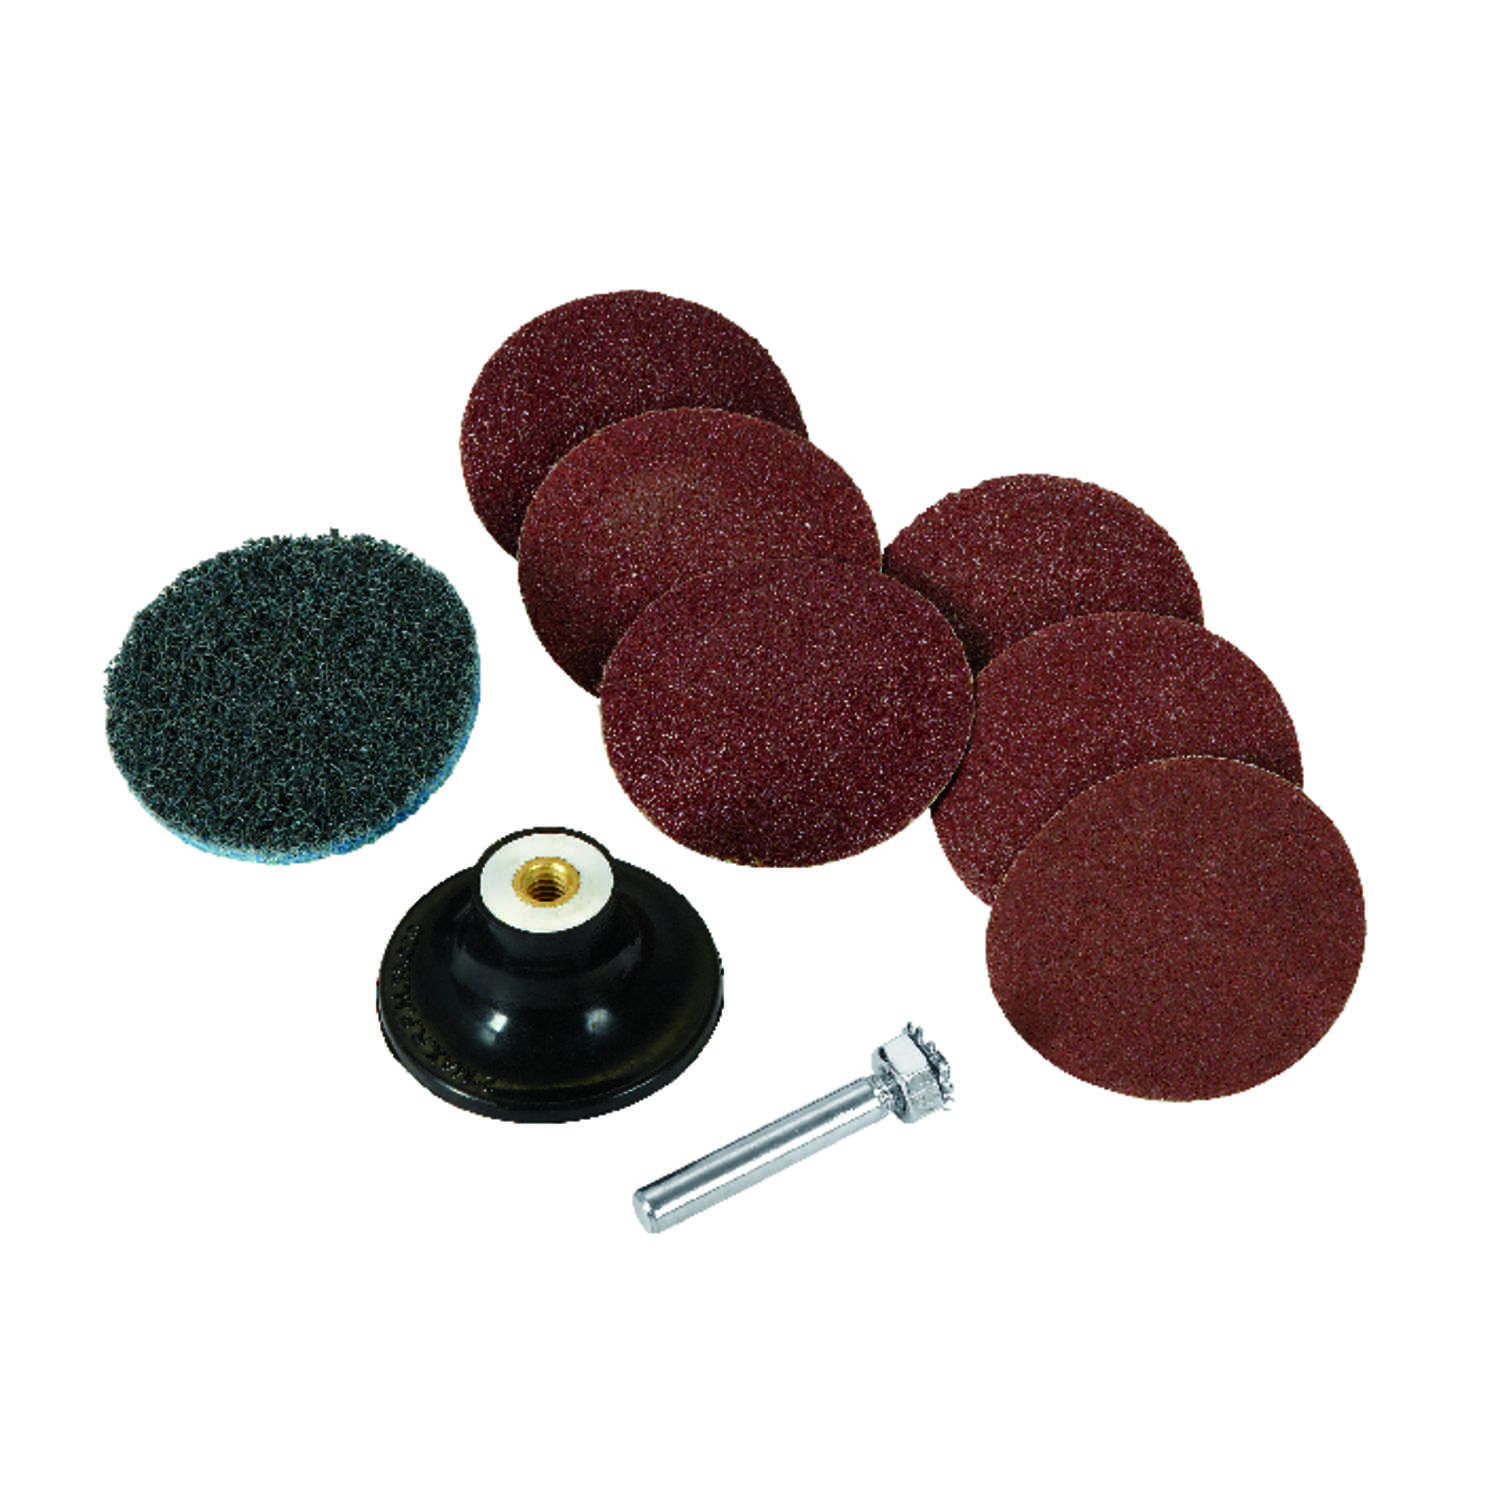 Craftsman  2 in. Aluminum Oxide  Assorted  9 pc. Sanding Disc  Hook and Lock